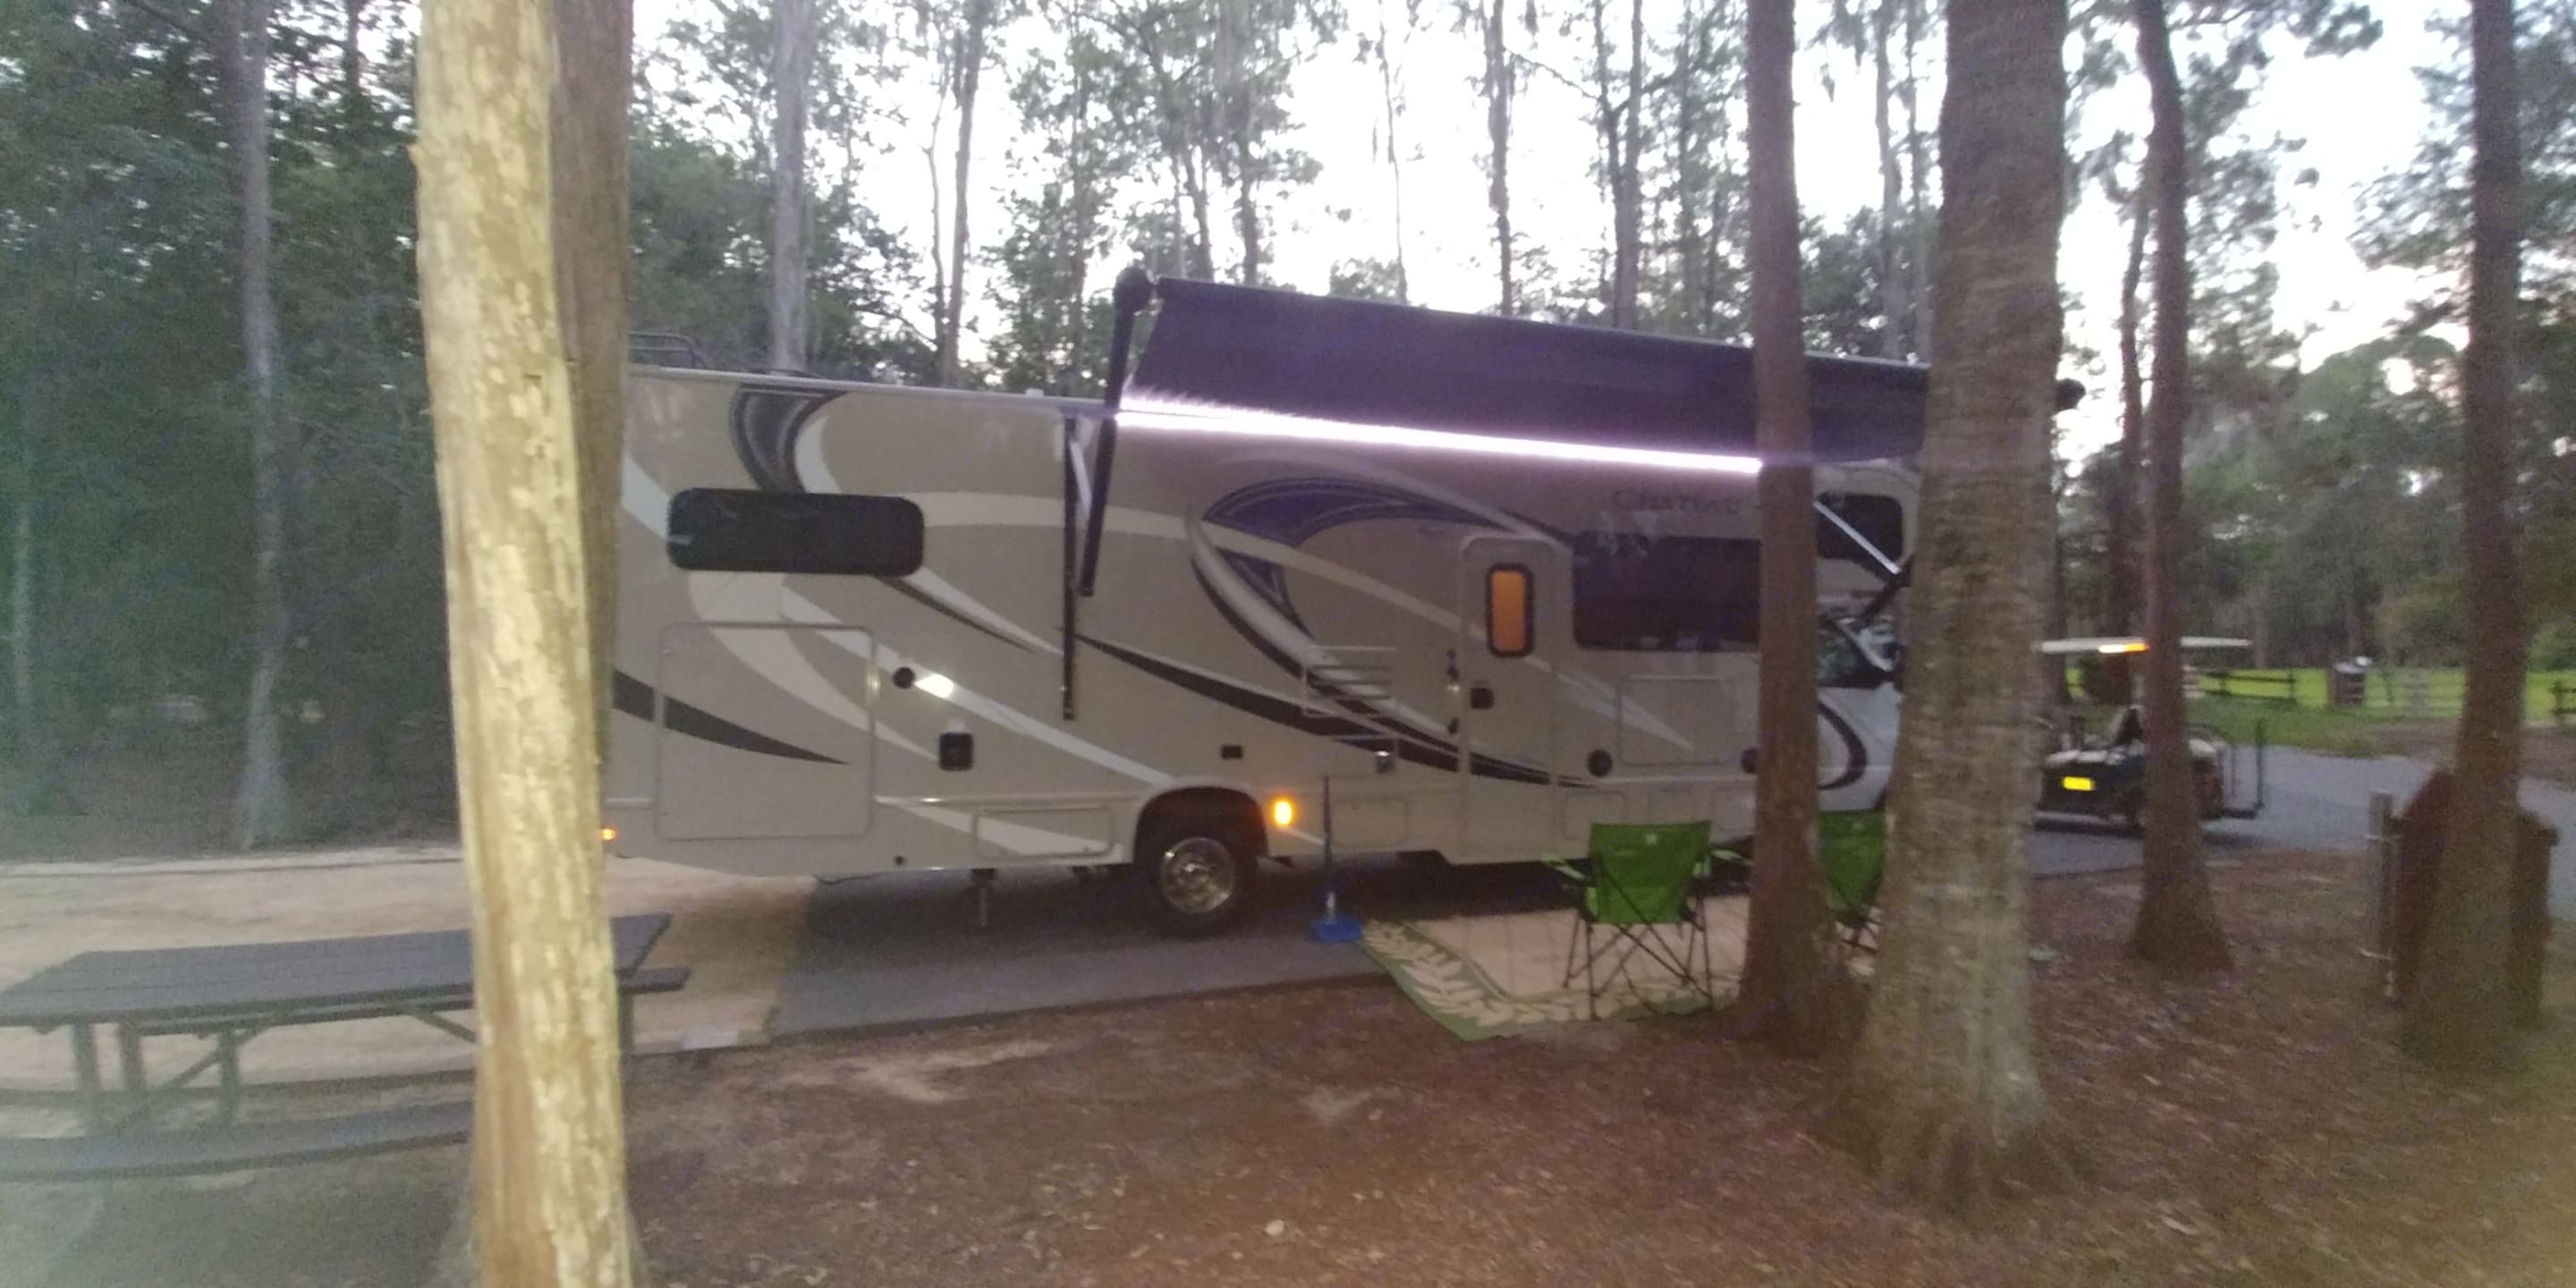 Ft Wilderness at Disney. Thor Motor Coach Chateau 2017